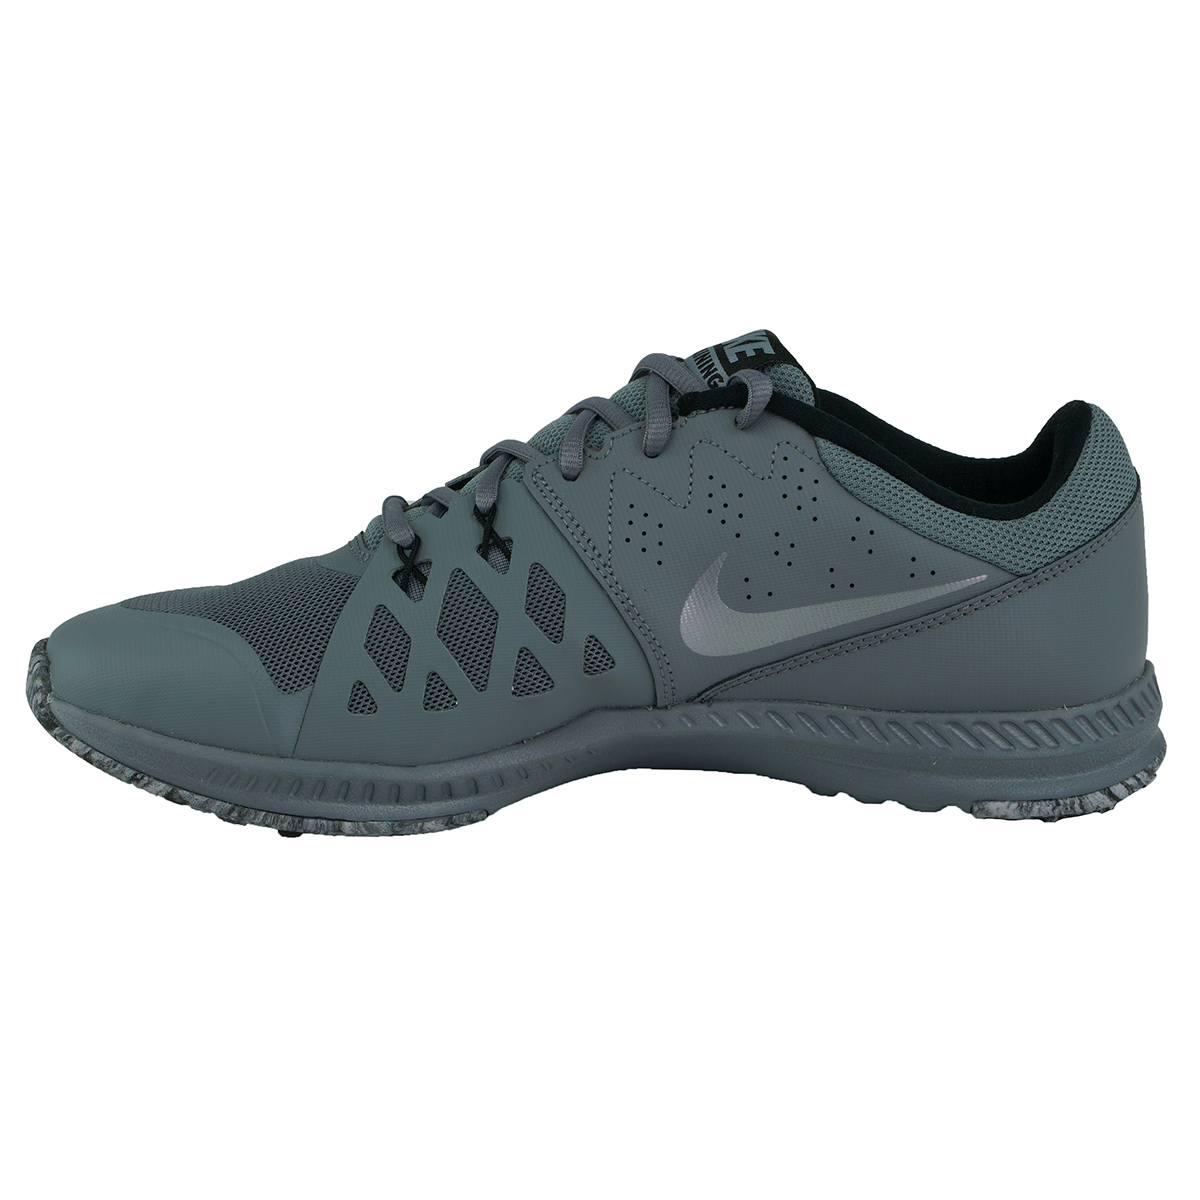 02efedc2ccac Nike Men s Air Epic Speed TR II Cross Trainer Shoe Cool Grey black 9 M US.  About this product. 10 viewed per hour. Picture 1 of 4  Picture 2 of 4   Picture 3 ...